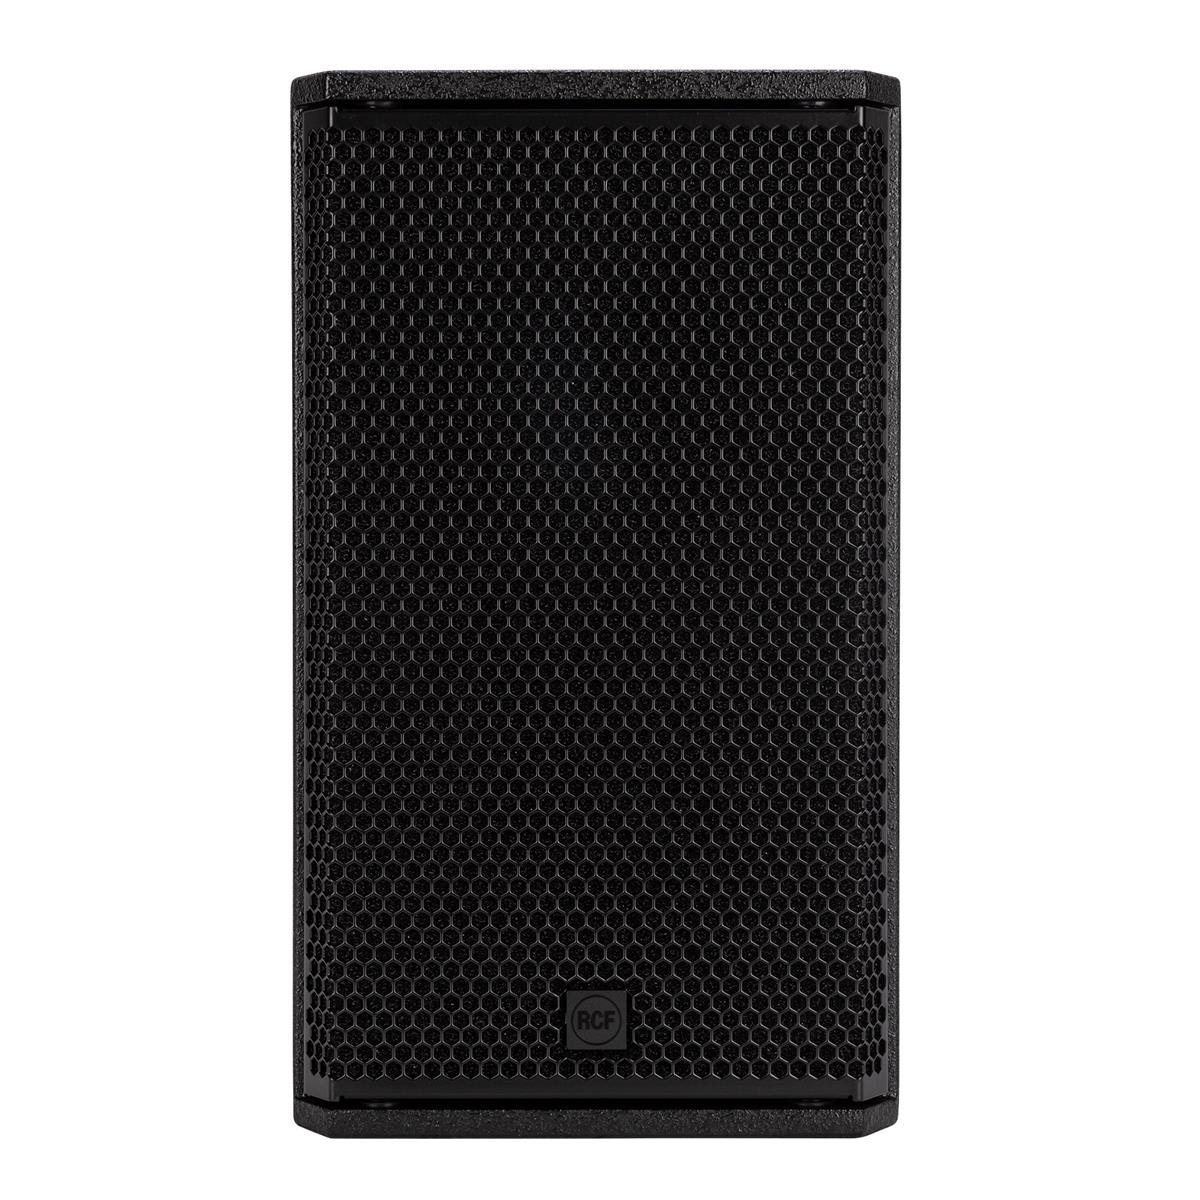 RCF Two-way passive speaker system 8in+ 1in, 300W